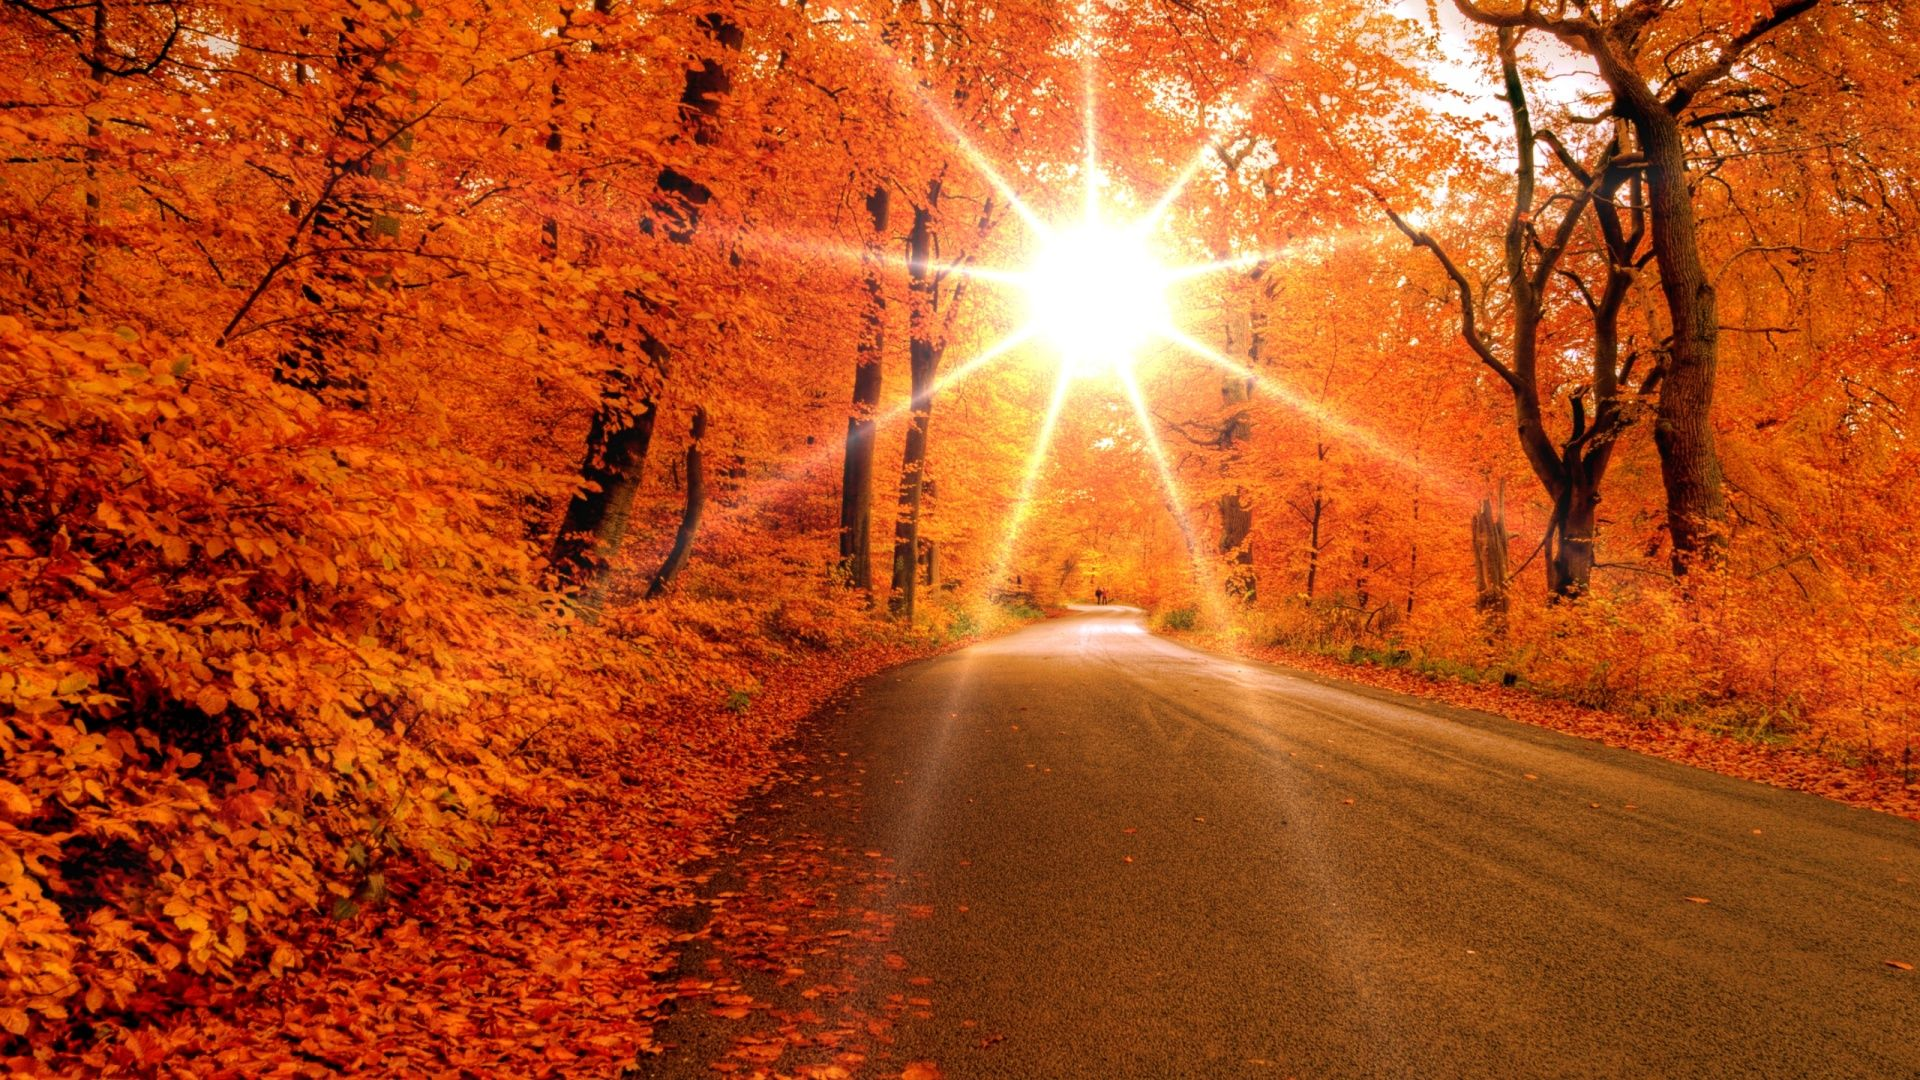 Fall Leaves Wallpaper High Quality Resolution Natures Wallpapers